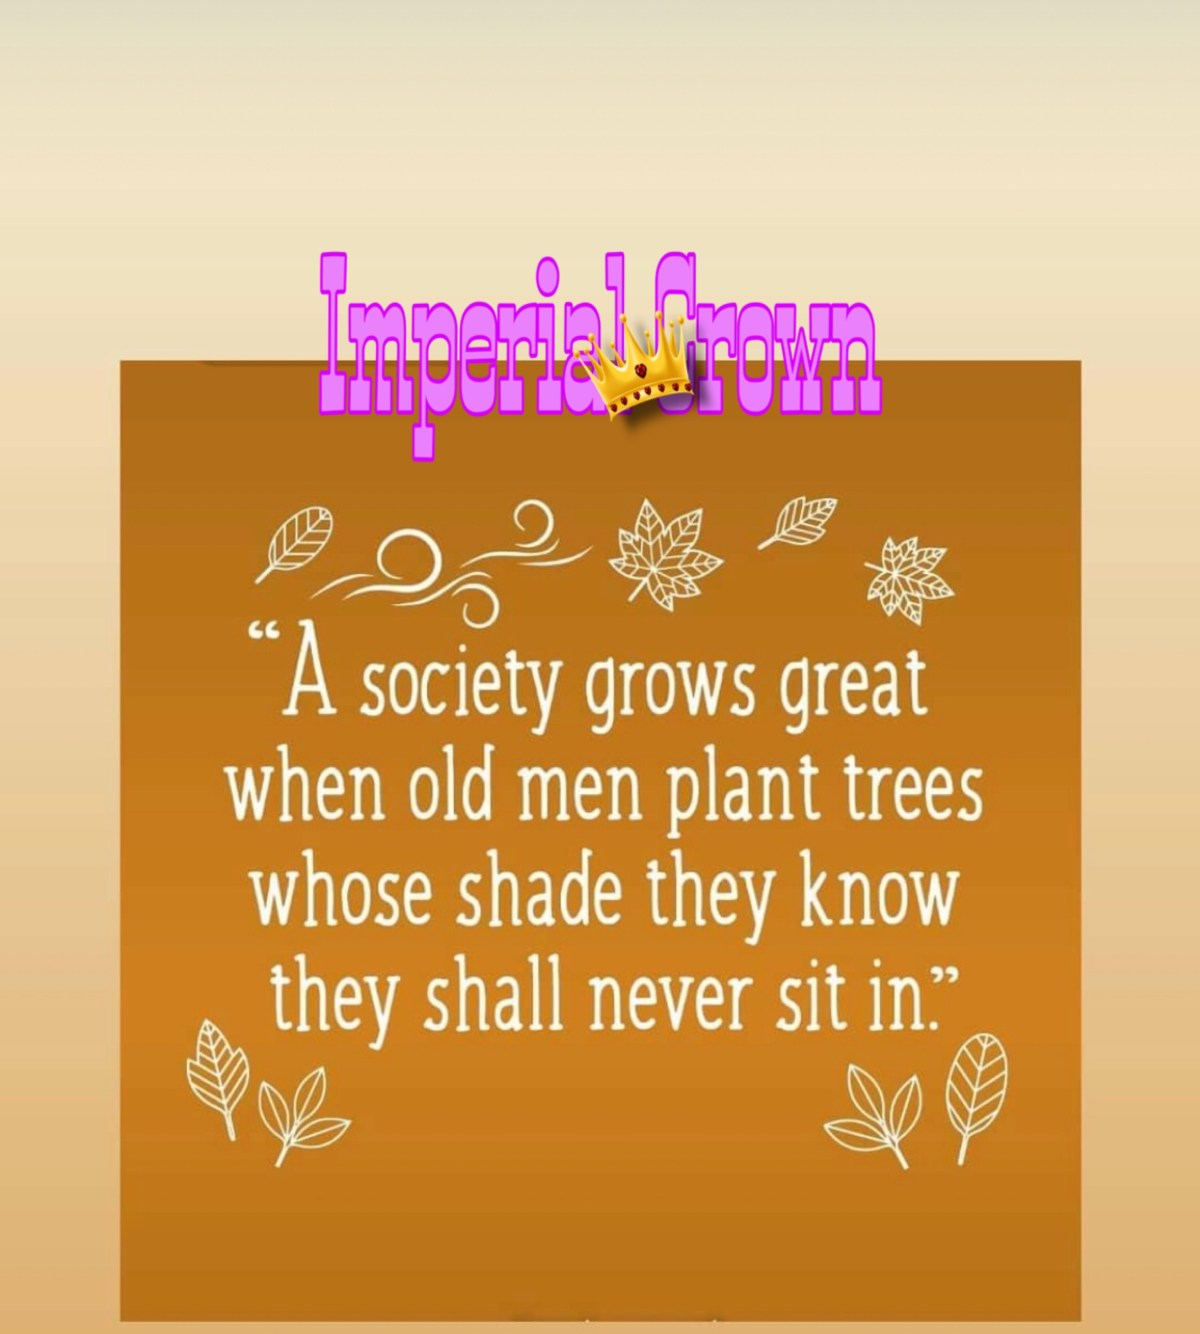 """"""" A society grows great when old men plant trees whose shade they know they shall never sit in """""""